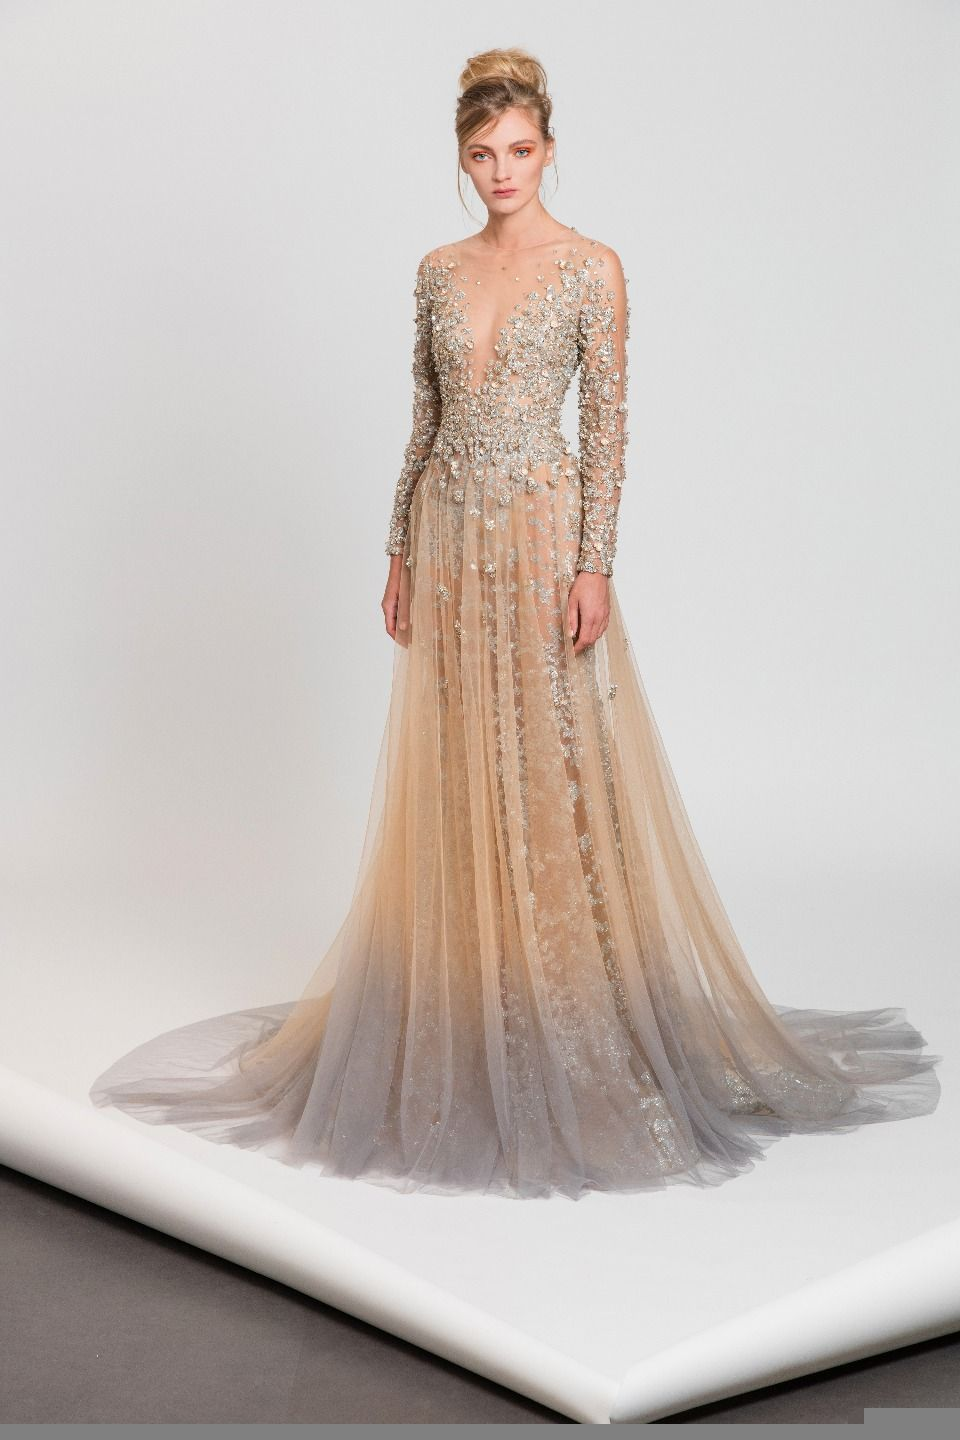 7f2c70c43ce09 Long sleeves evening dress in nude and silver shades featuring ...